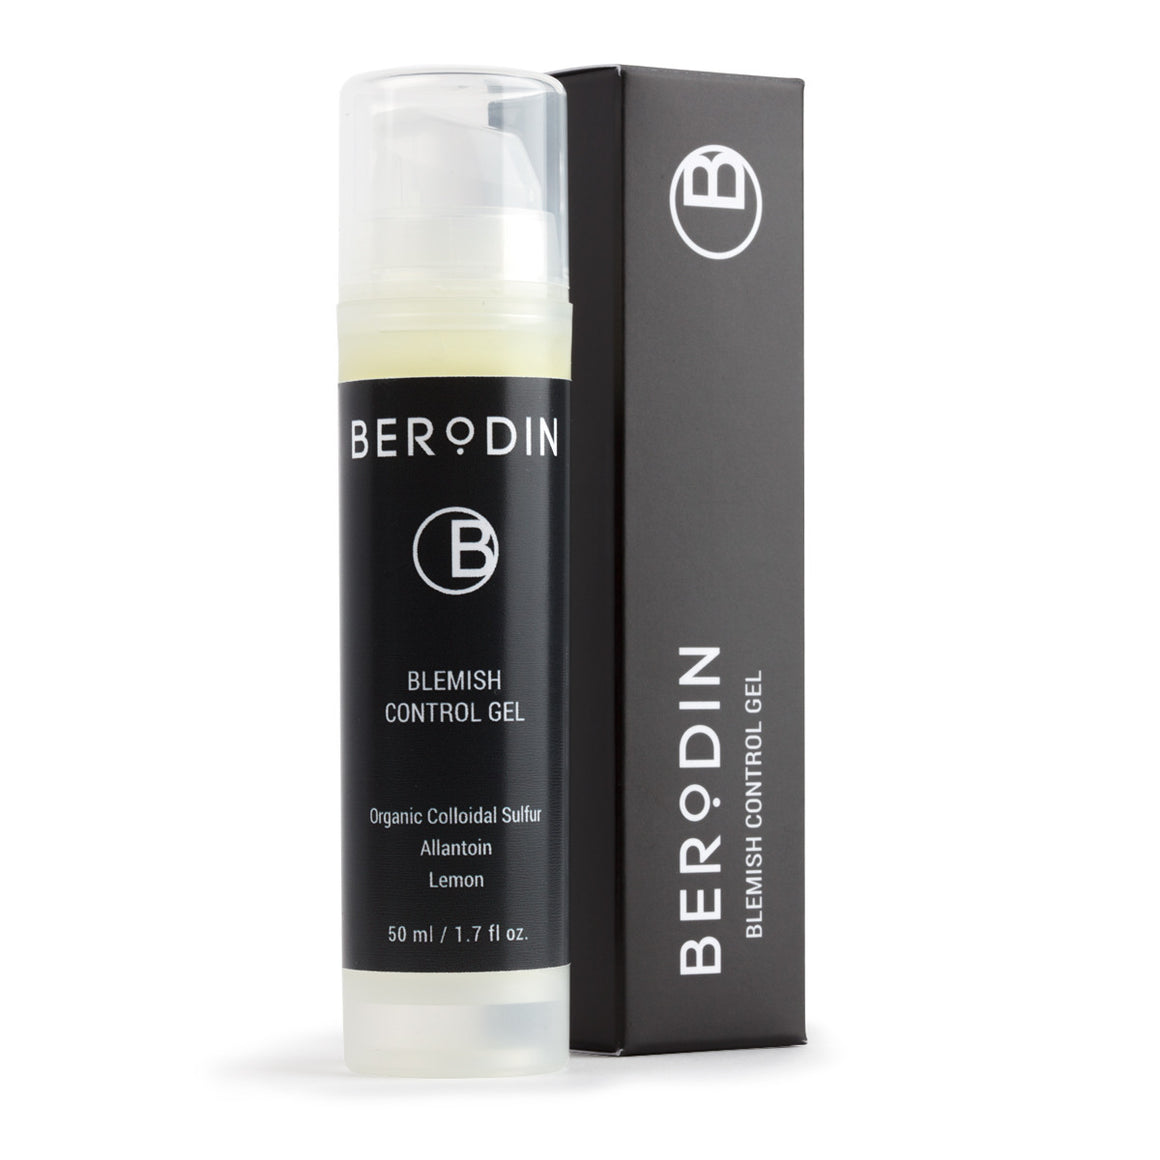 Berodin Clear It Blemish Control